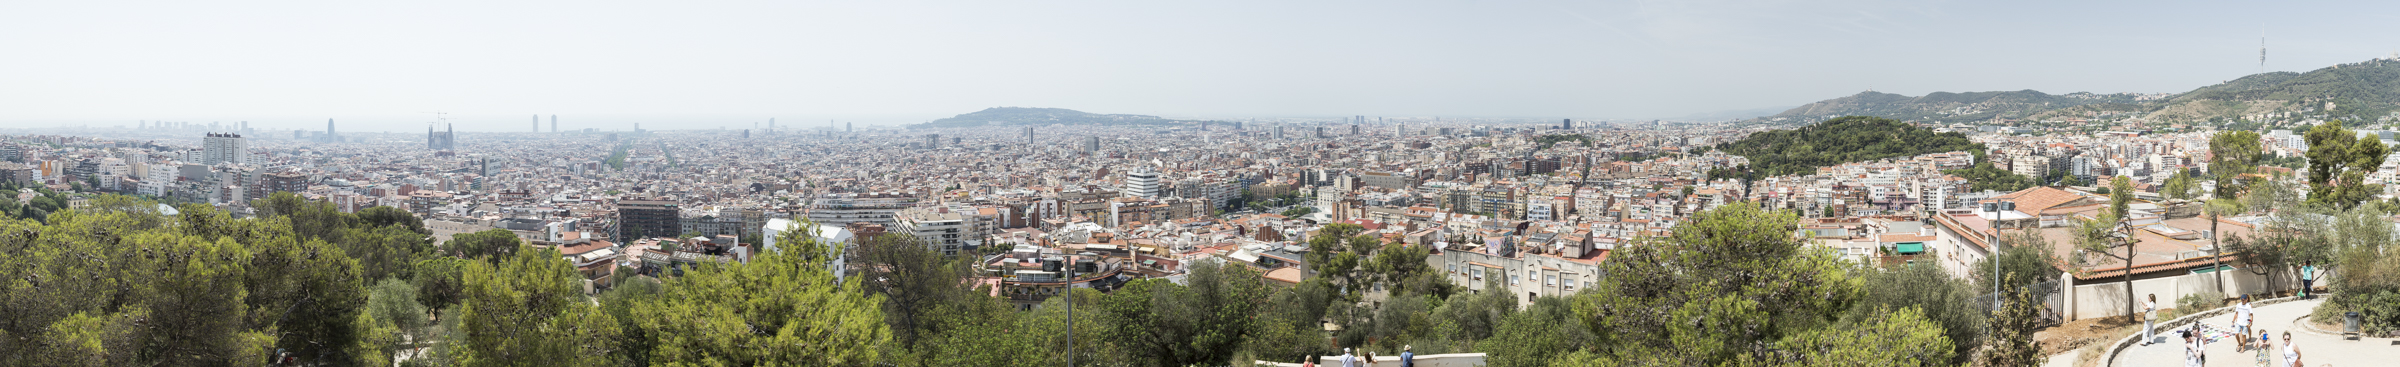 Barcelona from Park Guell